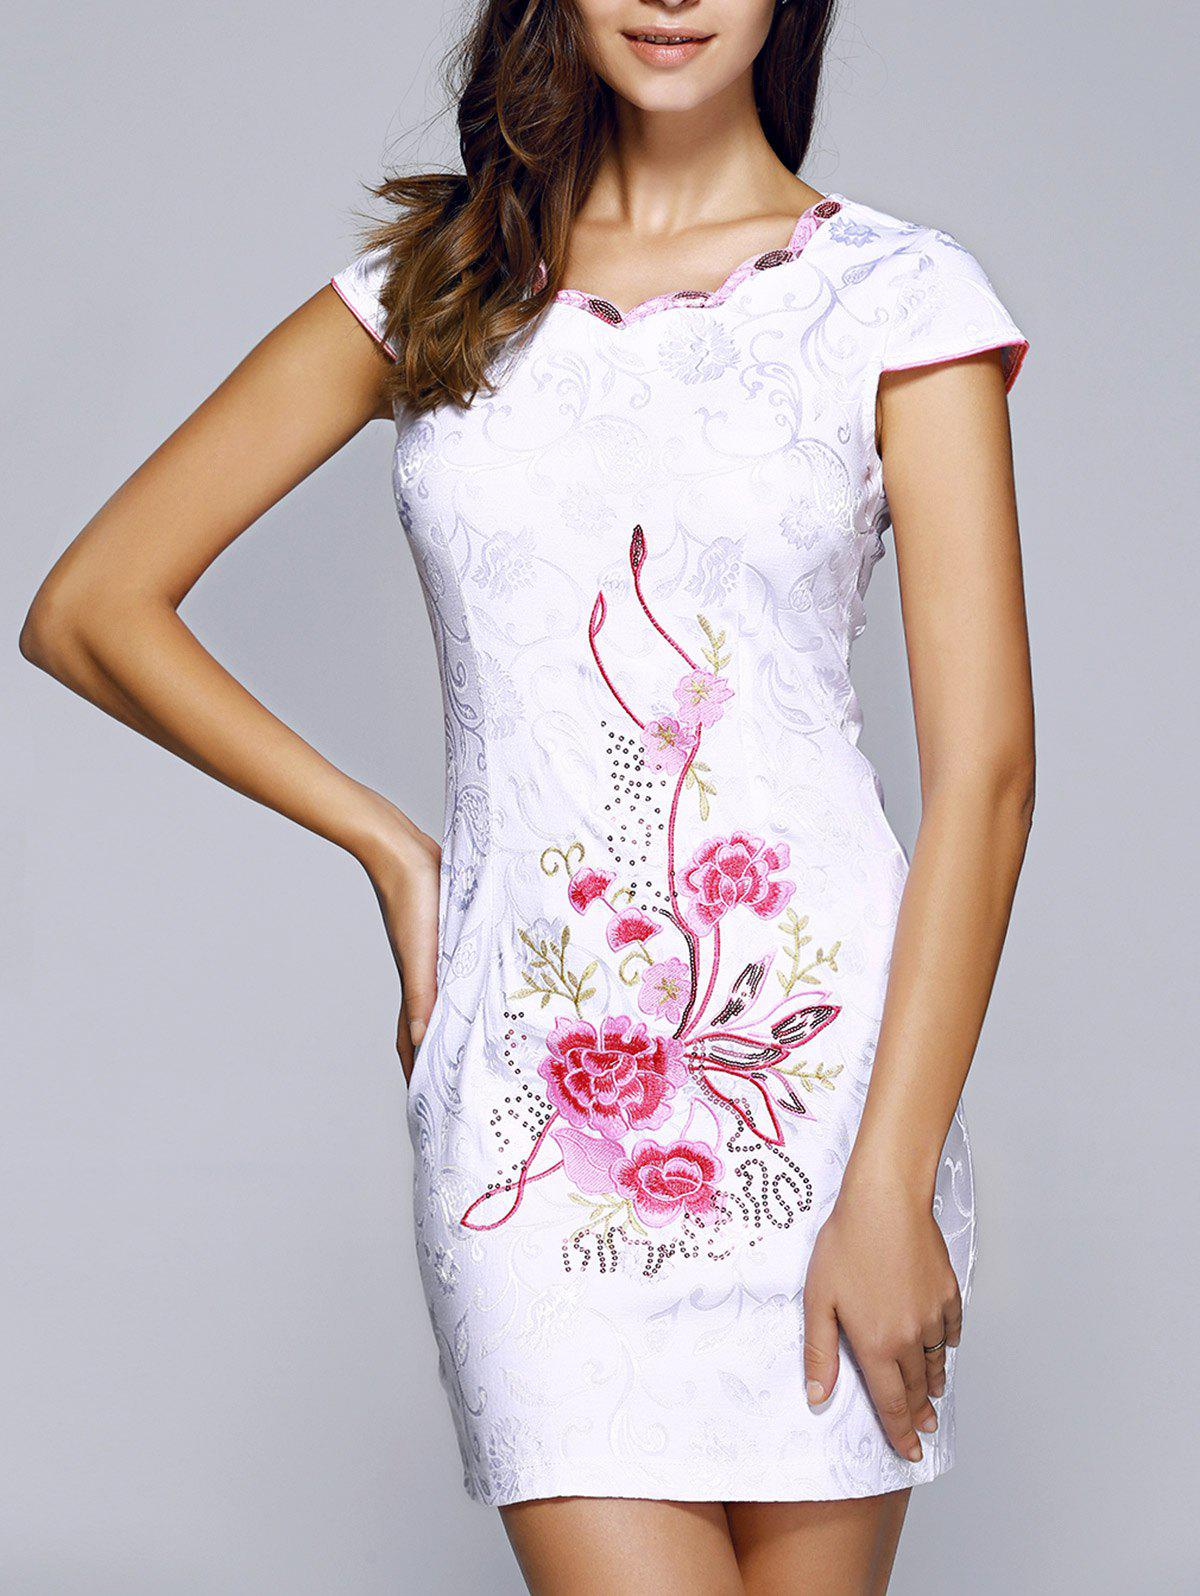 Retro Wavy Cut Jacquard Embroidered Dress For Women - LIGHT PINK 2XL